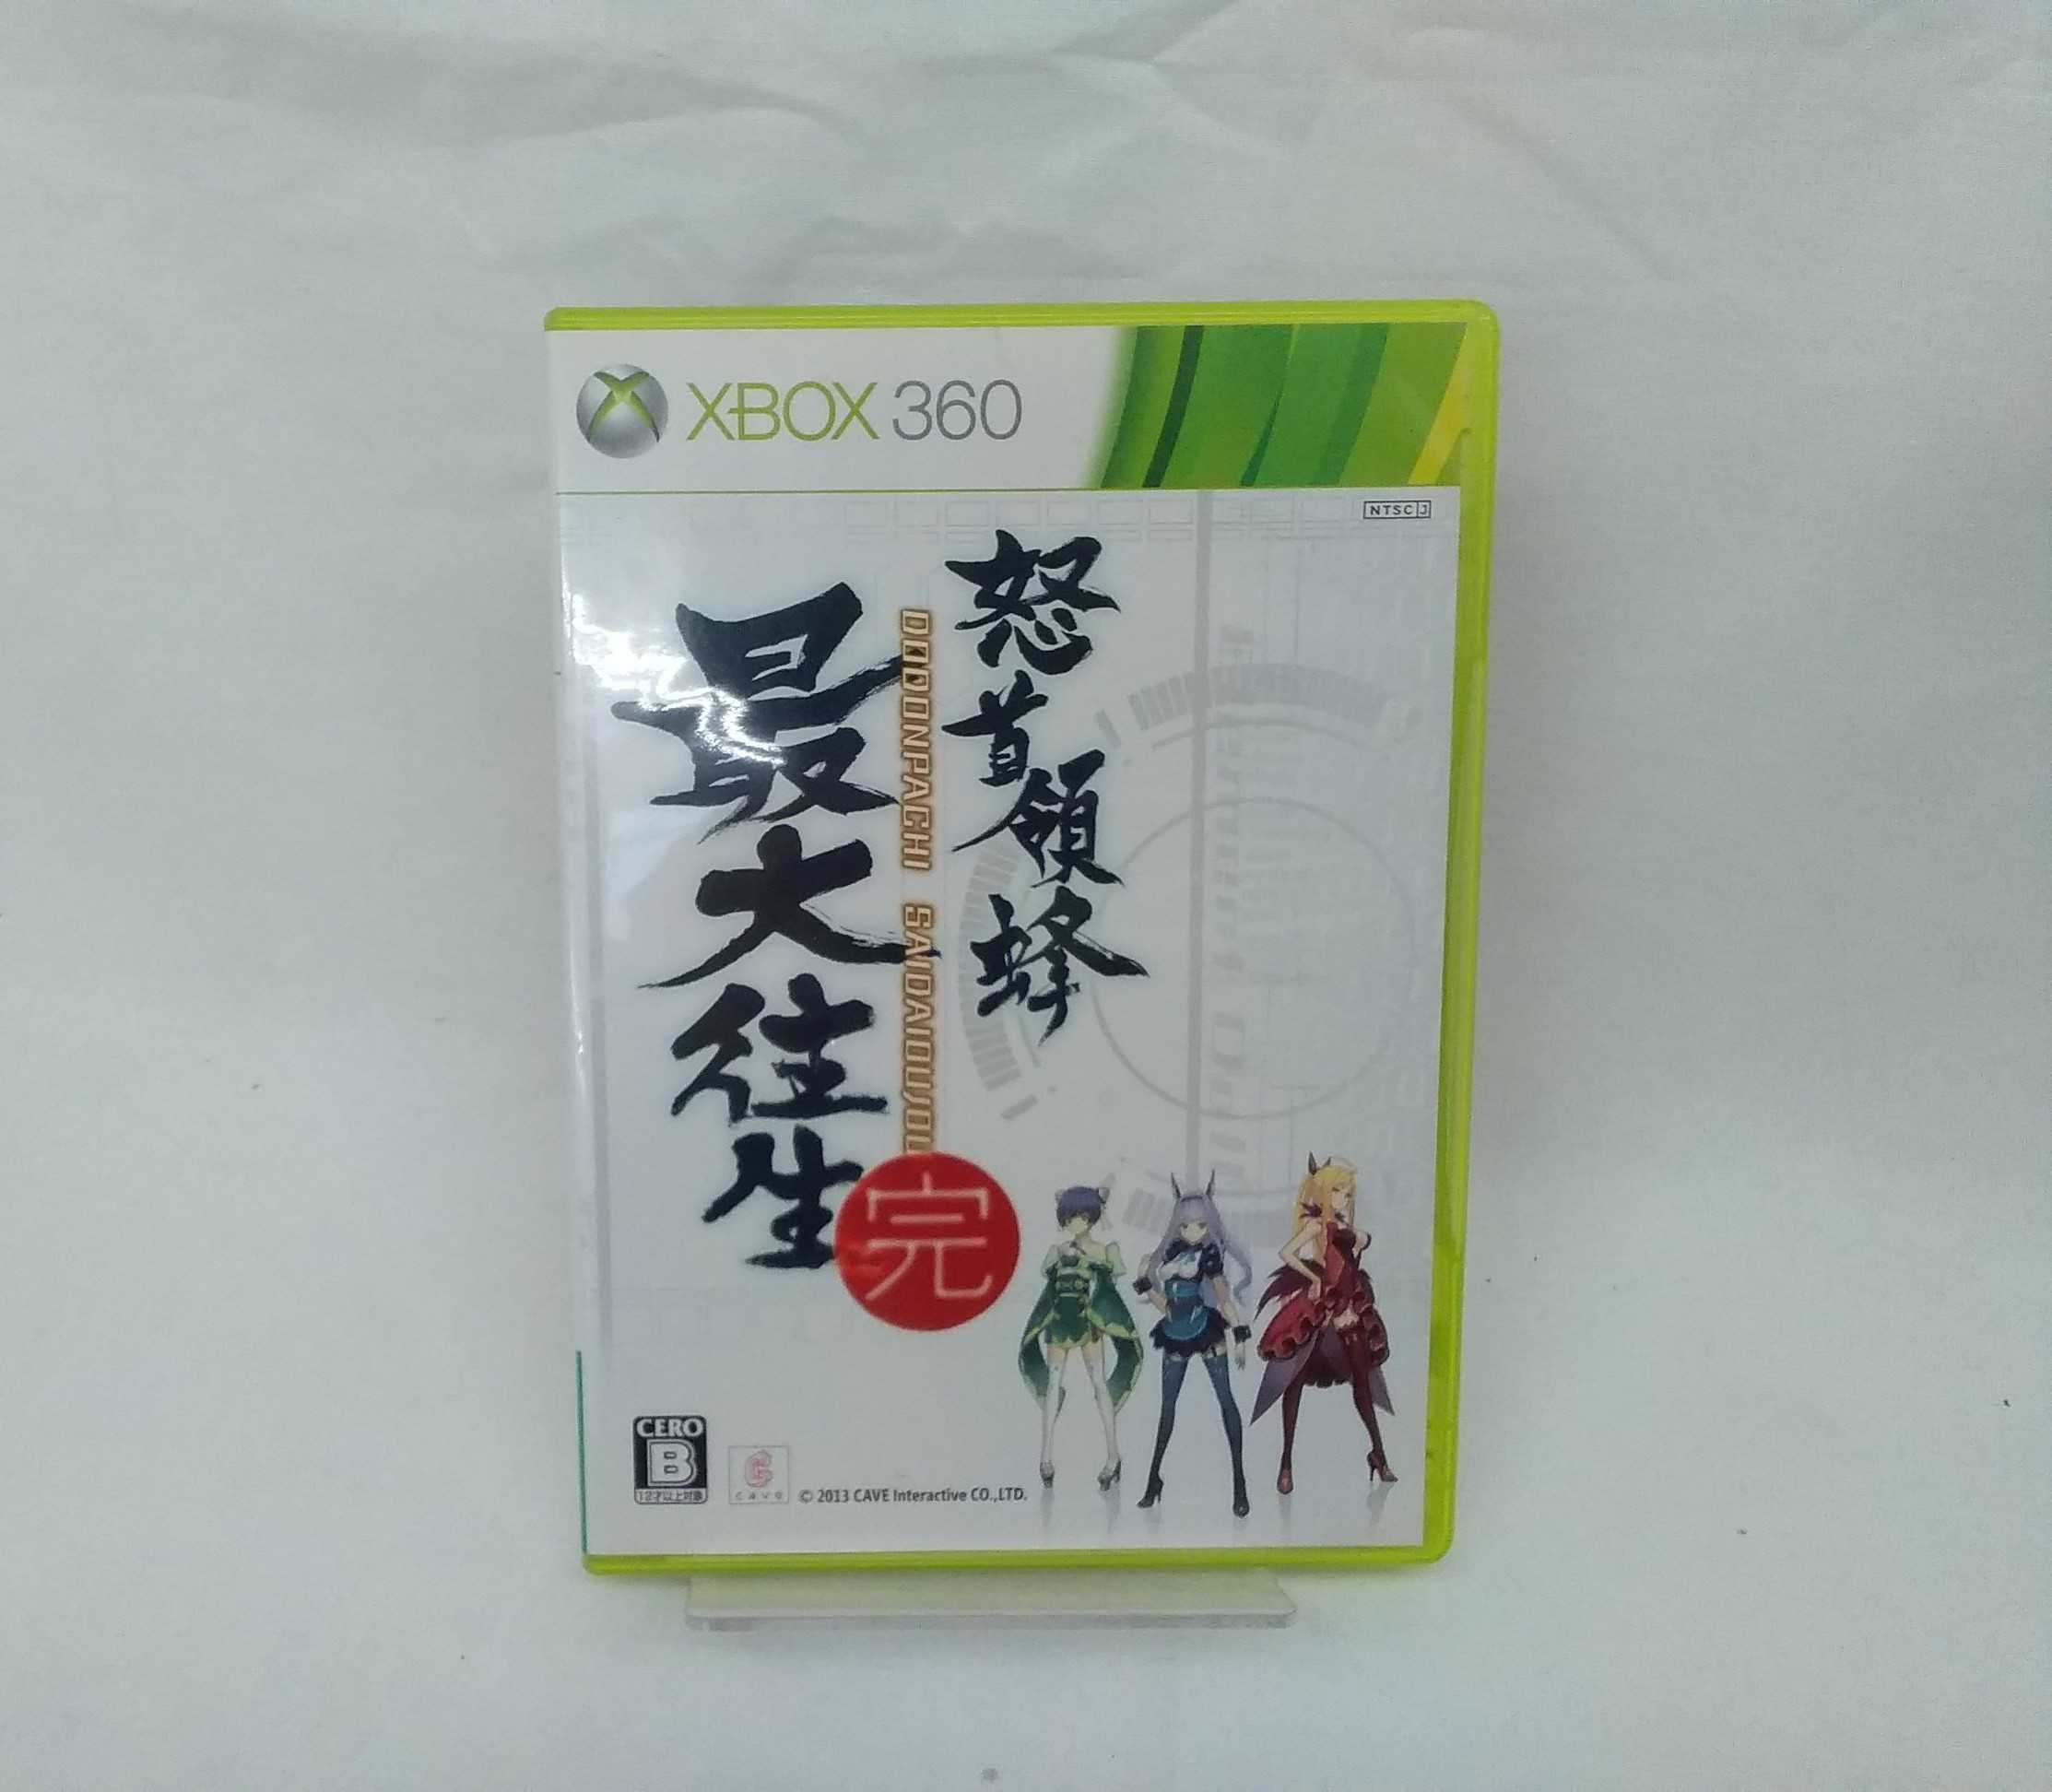 XBOX360ソフト 怒首領蜂 最大往生|ケイブ